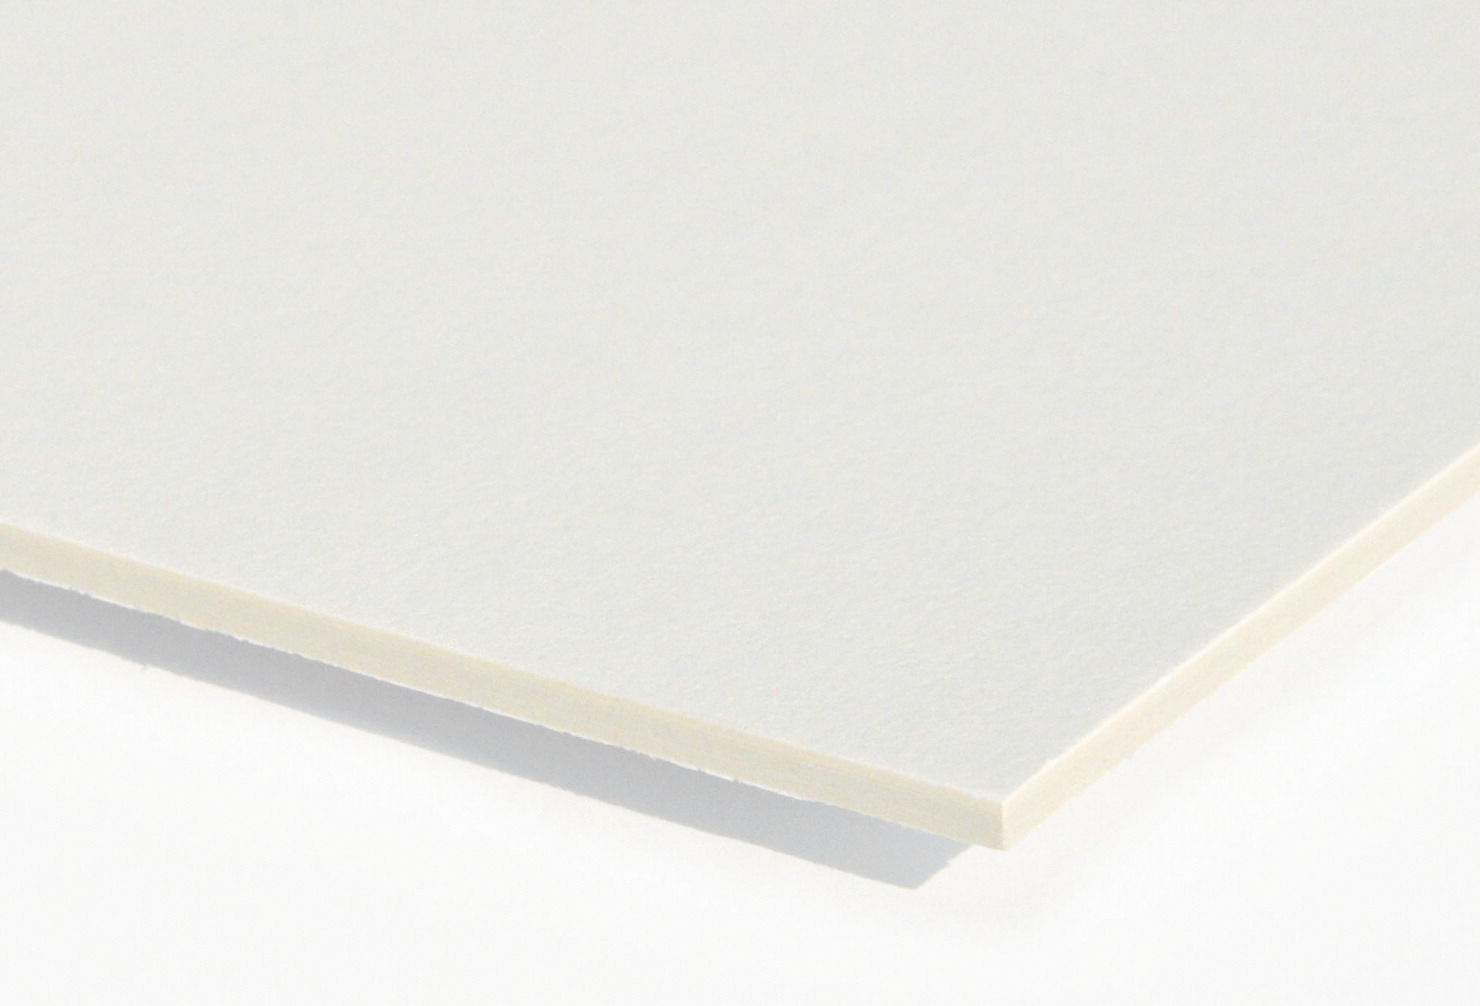 Crescent 114 Extra-Heavy Weight Cold Press Watercolor Board, 15 x 20 Inches, Case of 15